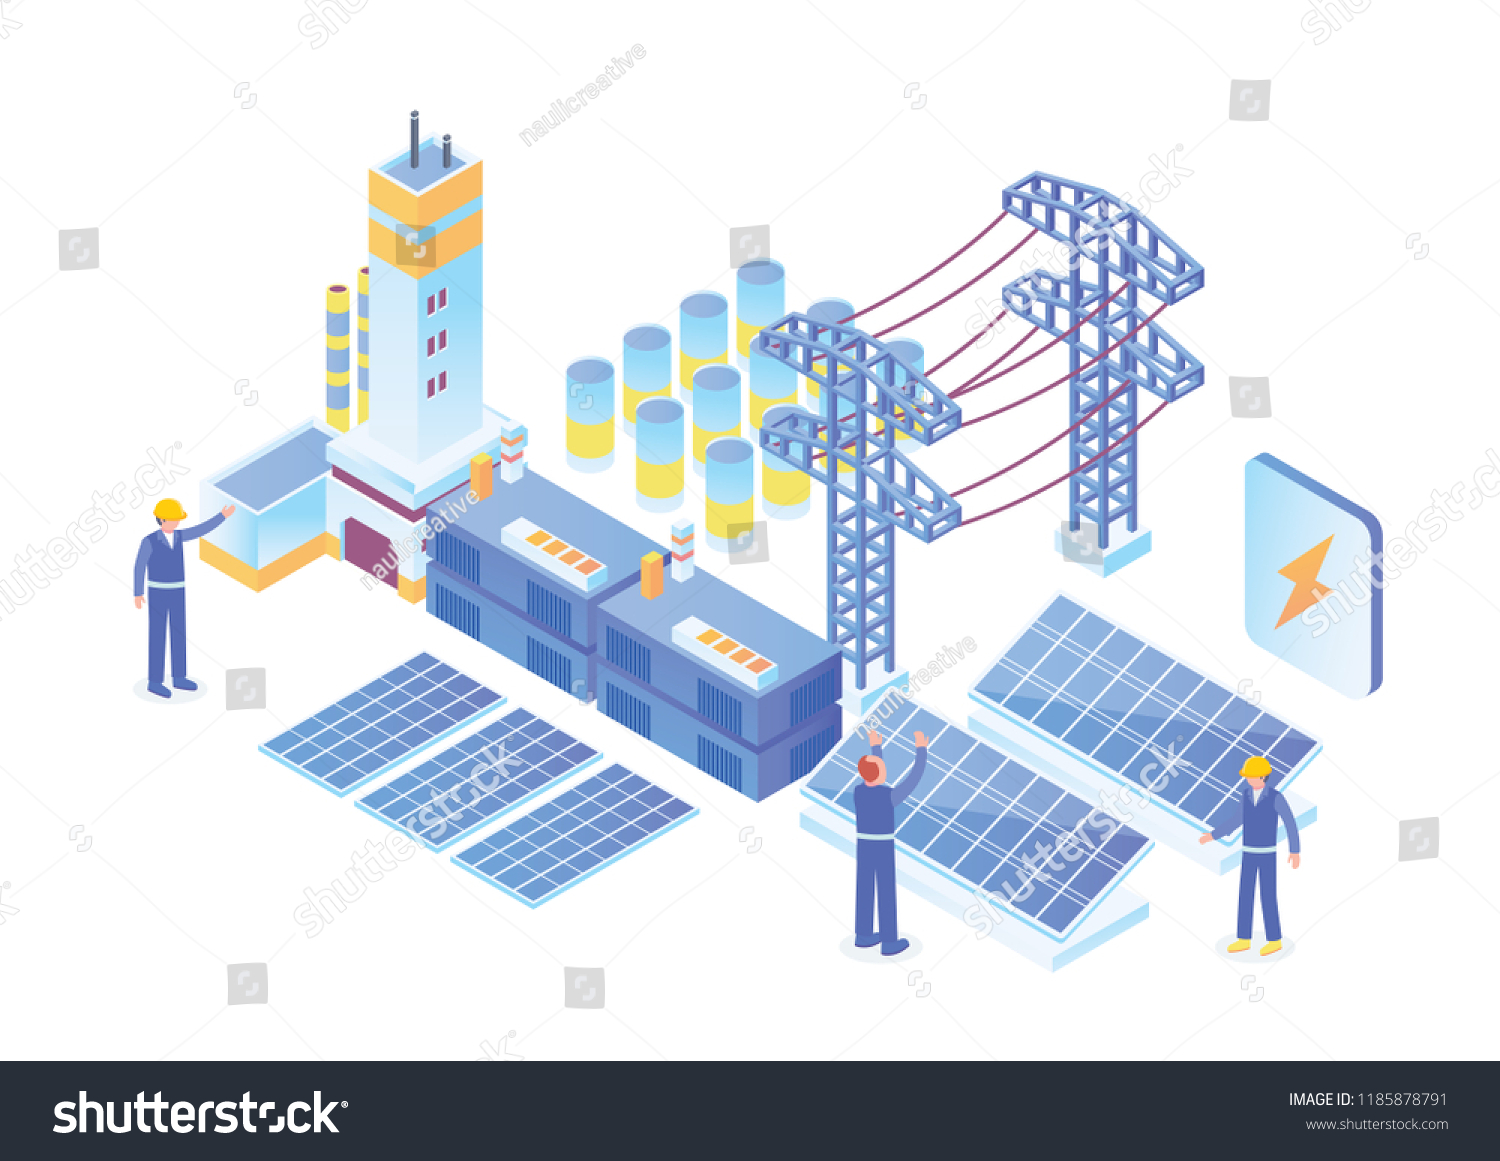 Modern Isometric Smart Electricity Solar Power Stock Vector Royalty Diagram Of Plant Illustration Suitable For Diagrams Infographics Book